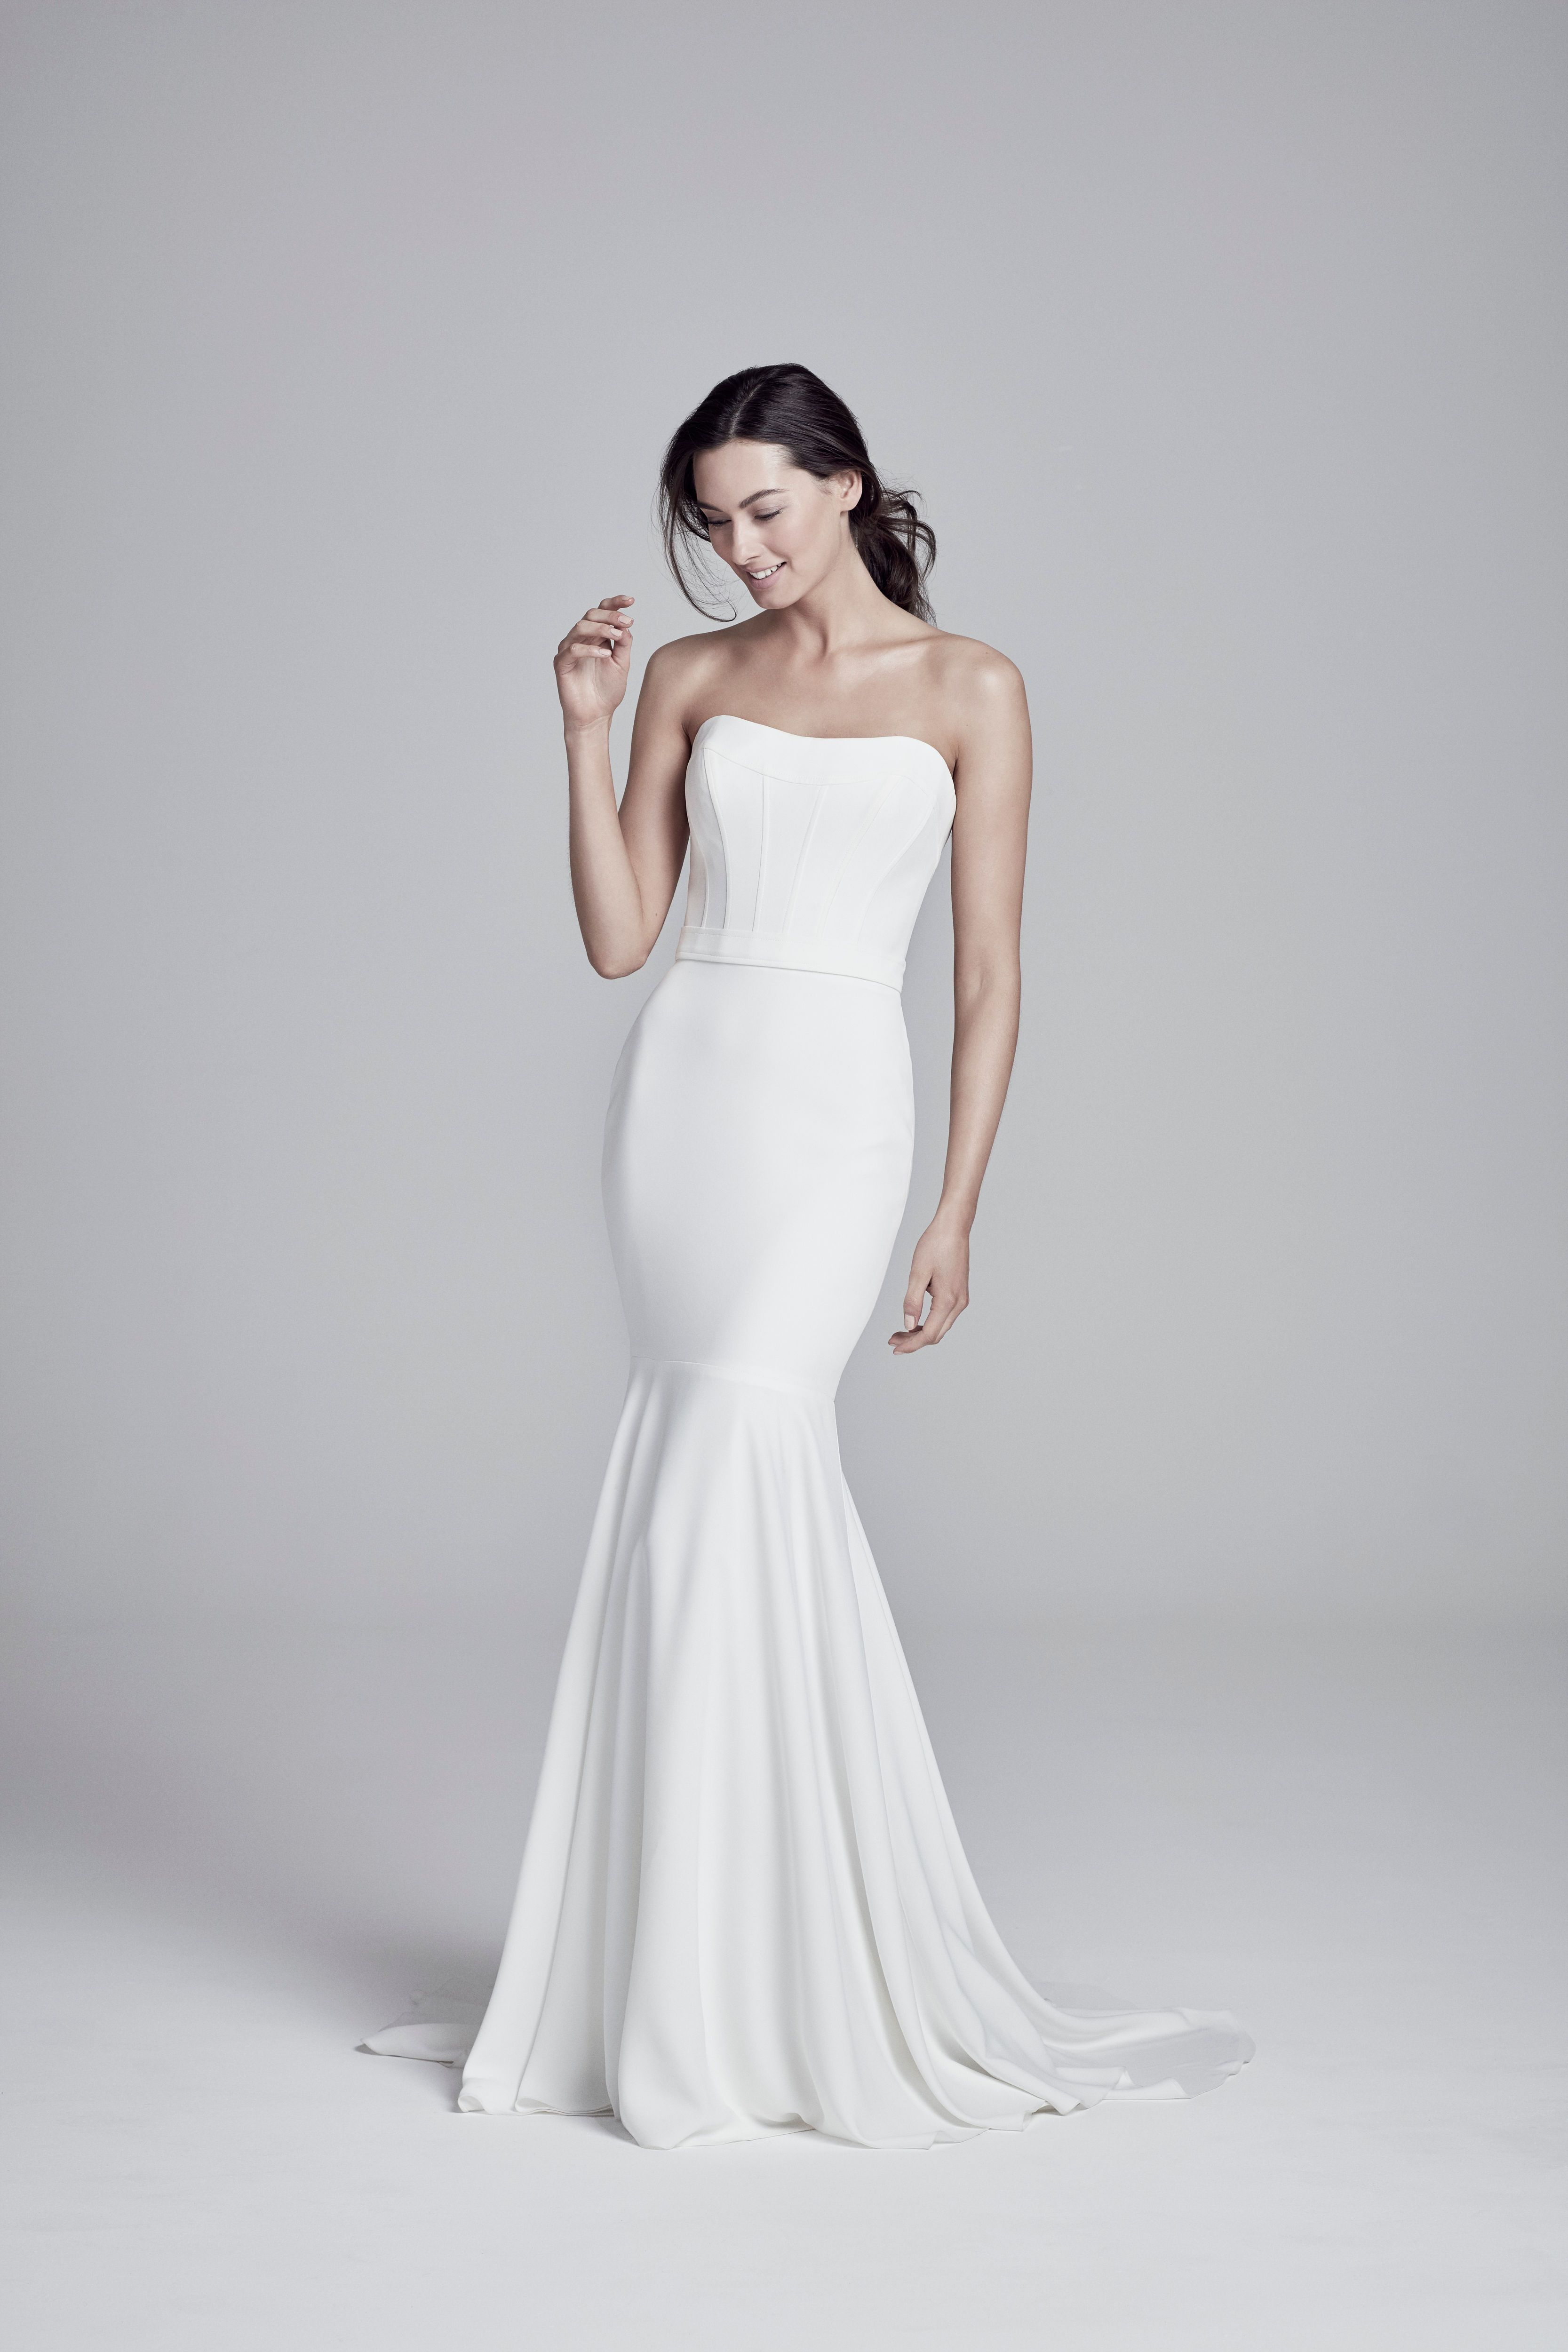 The wedding alist suzanne neville the collection selene